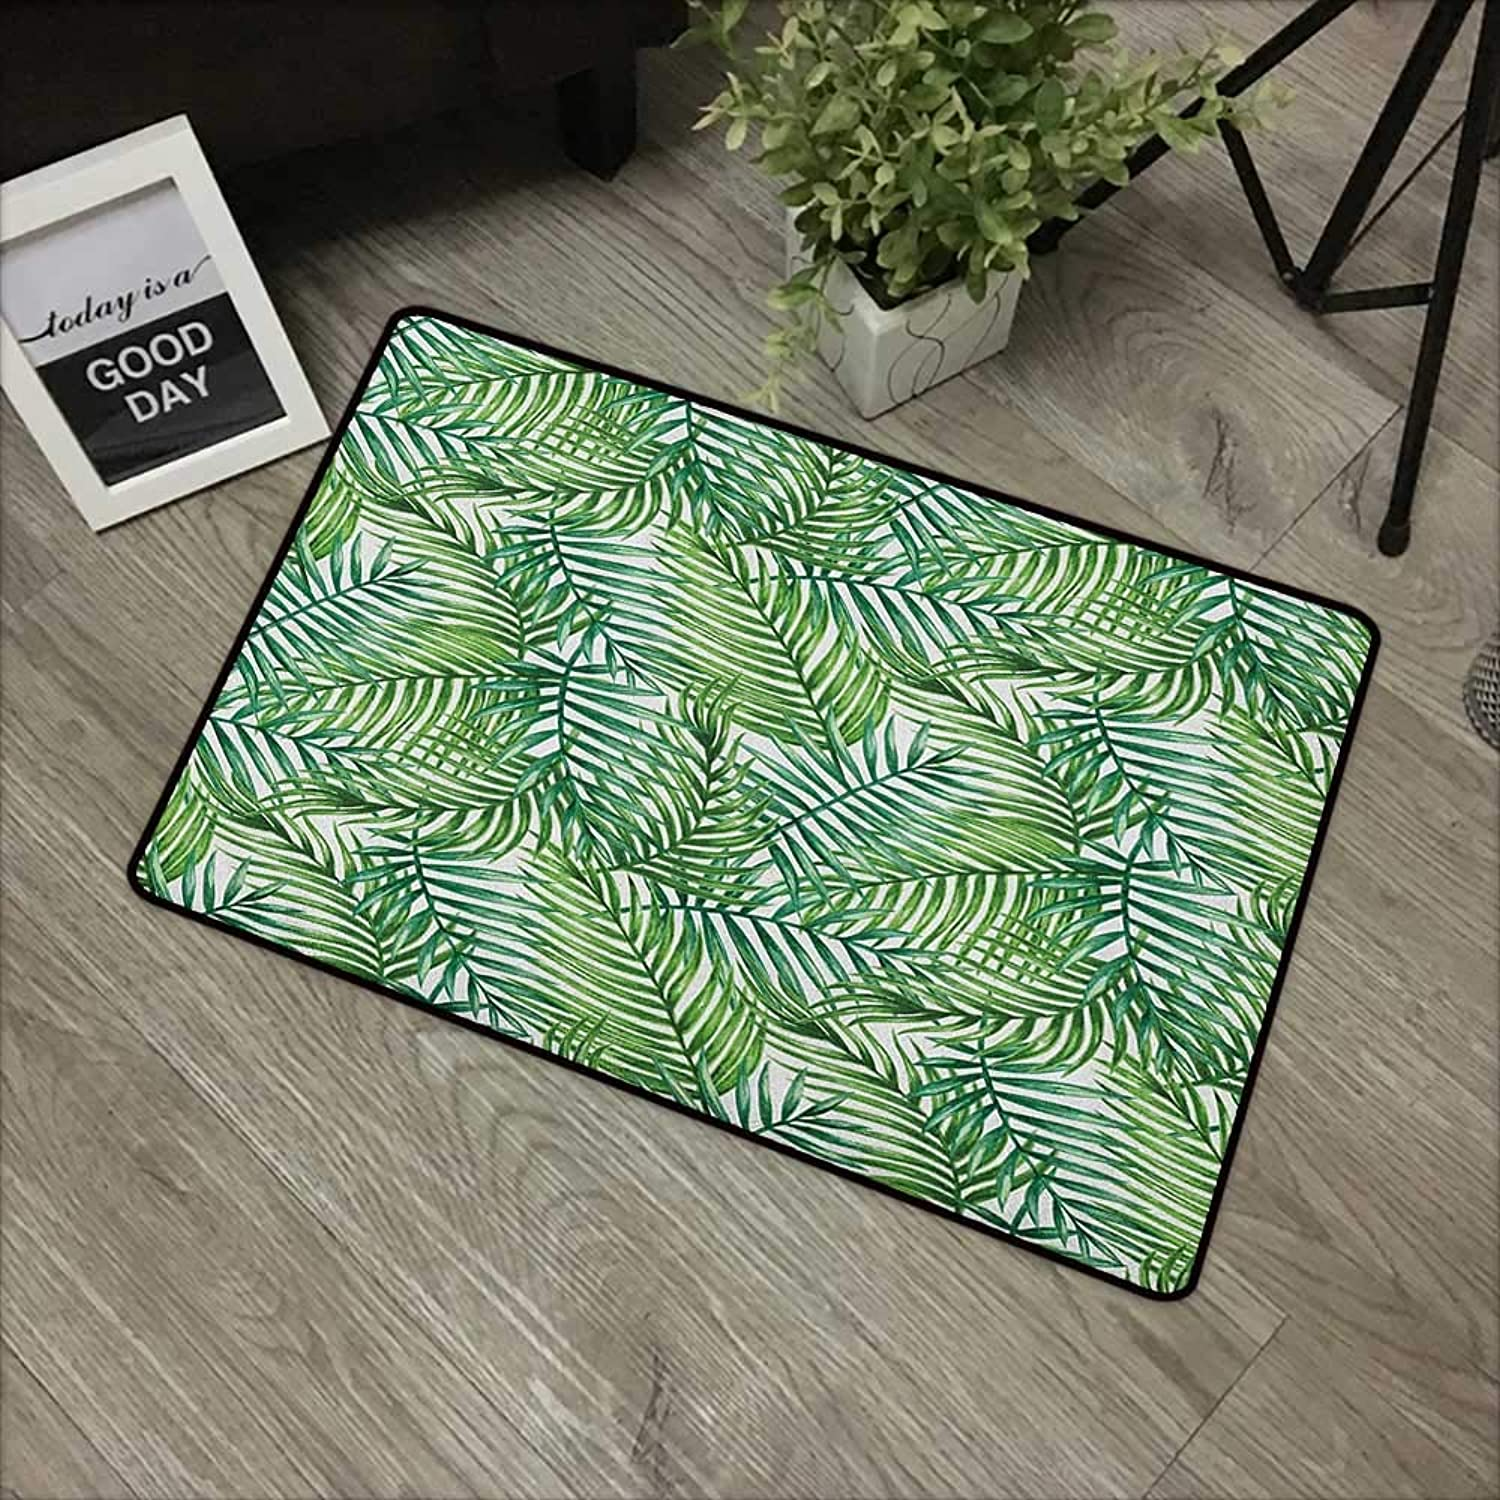 Bathroom Door mat W31 x L47 INCH Leaf,Watercolor Print Botanical Wild Palm Trees Leaves Ombre Design Image, Dark Green and Forest Green Non-Slip Door Mat Carpet